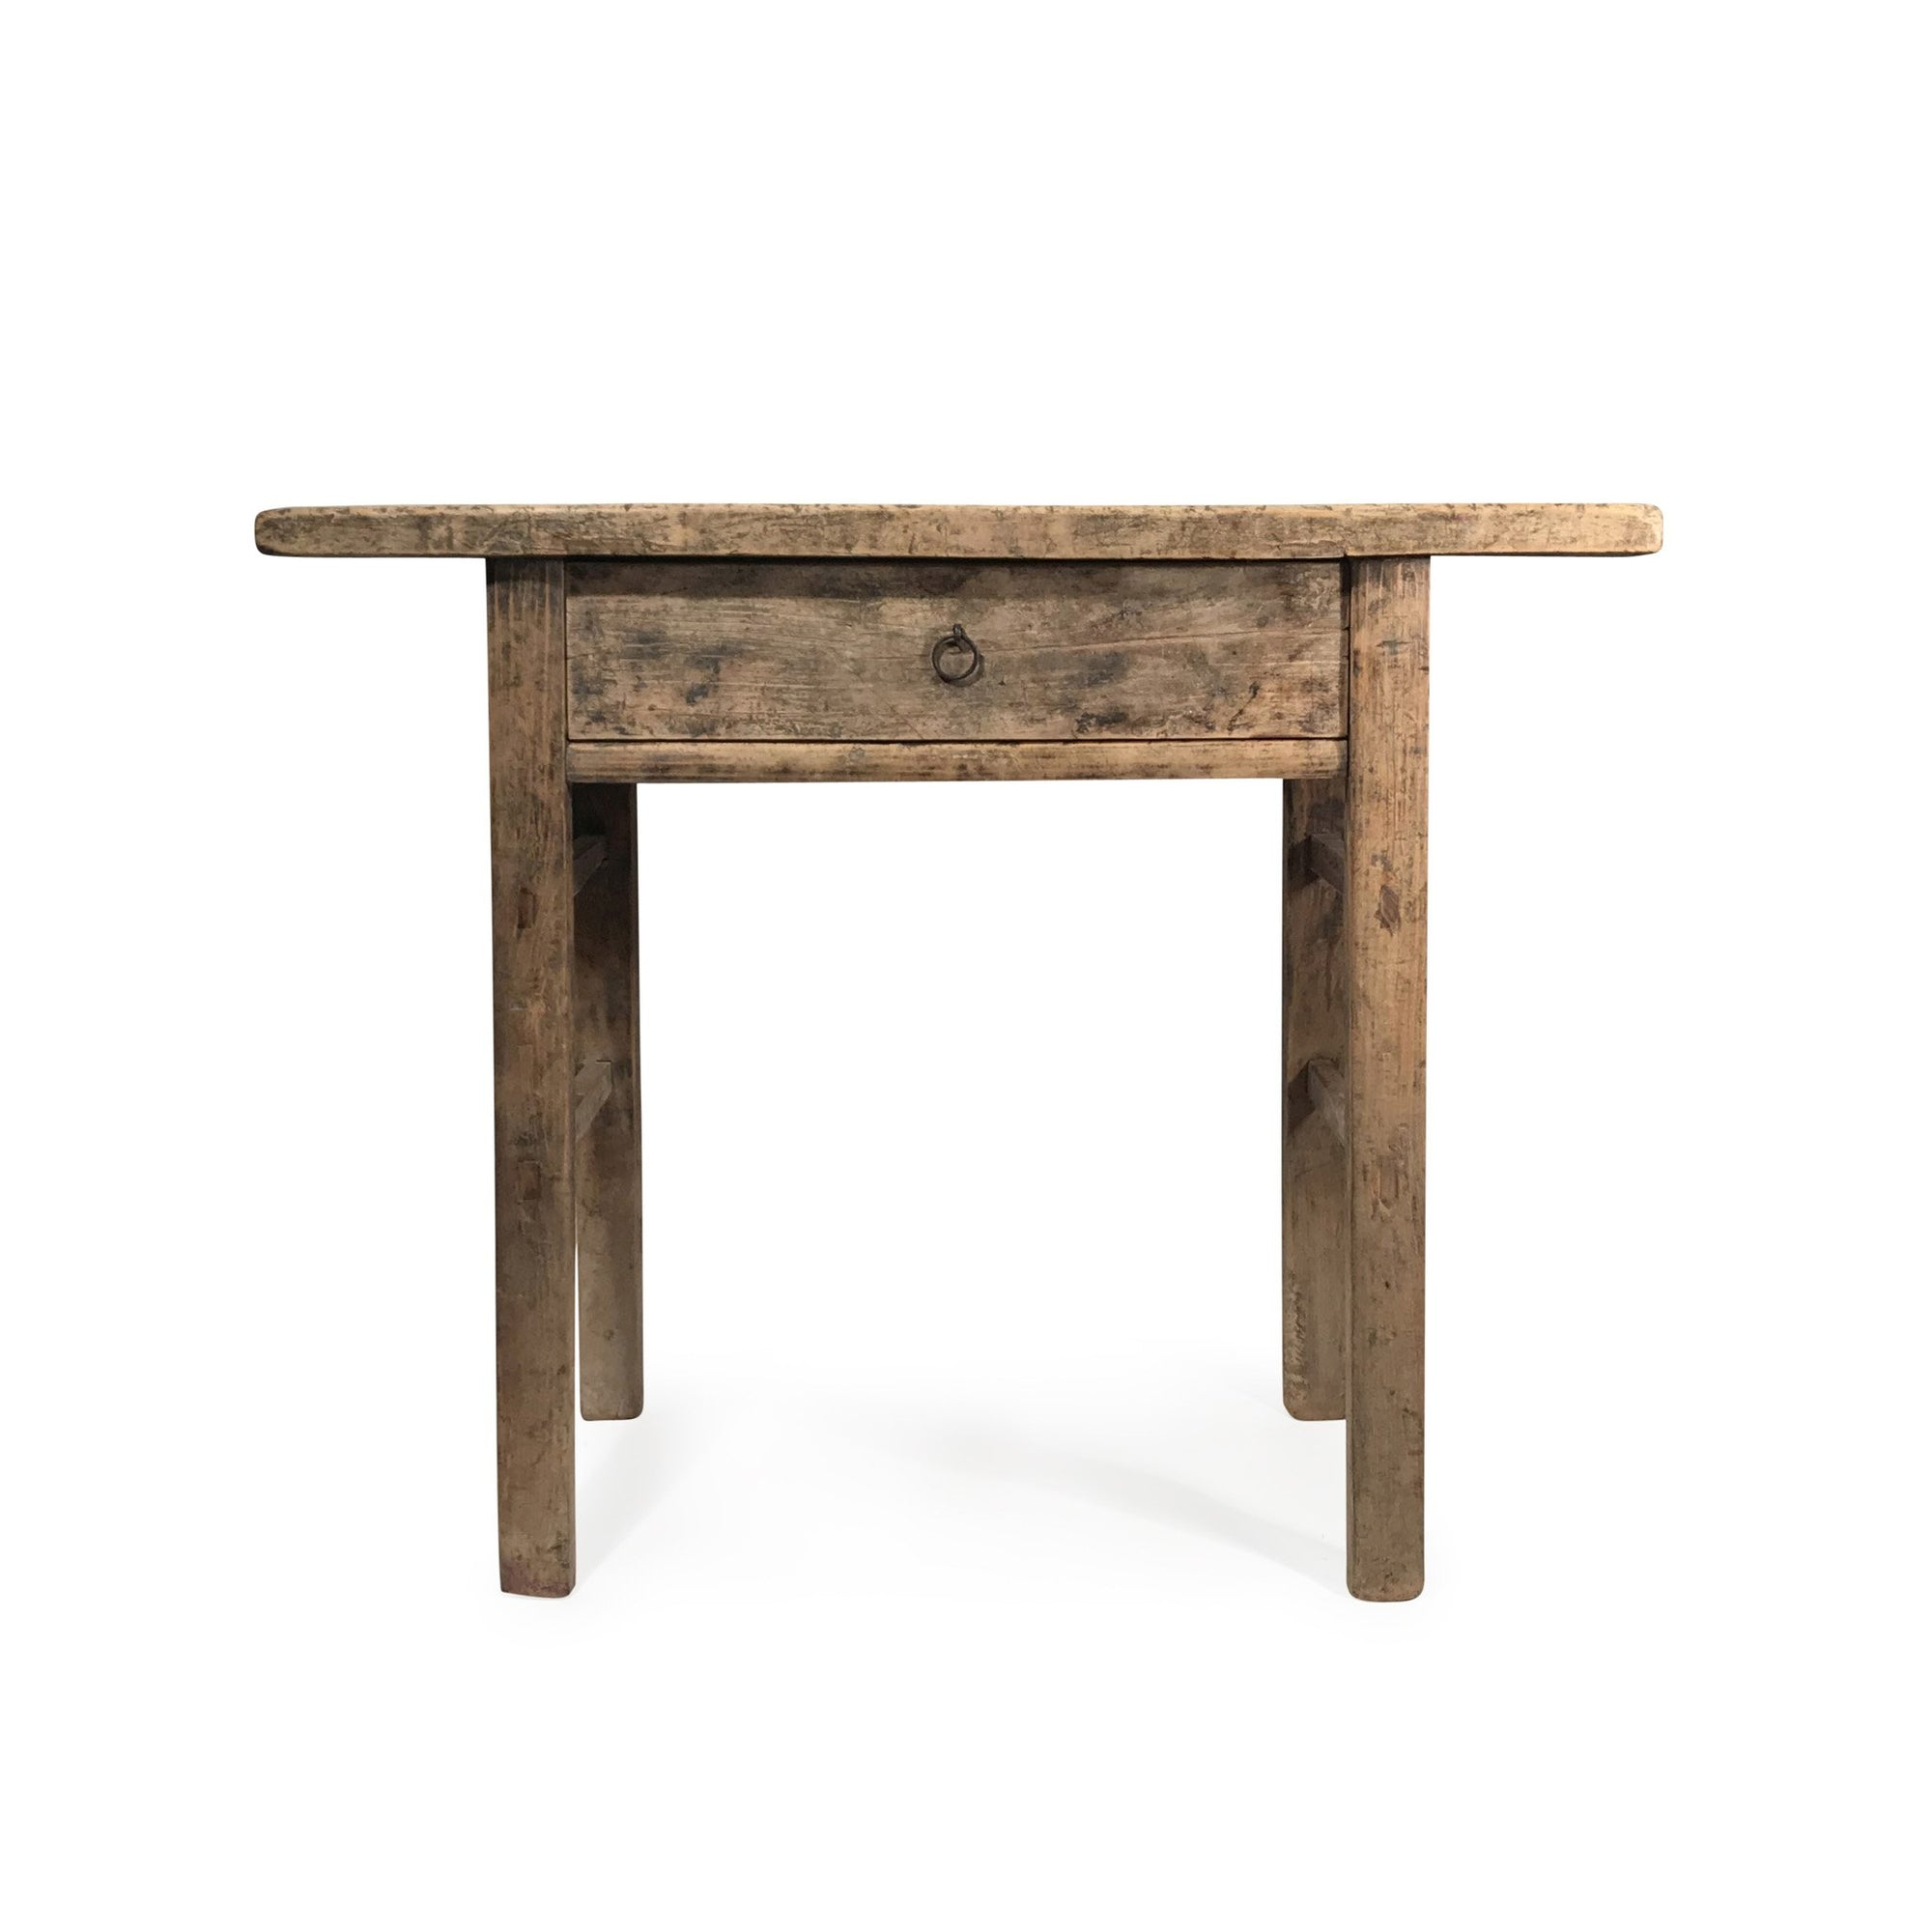 Willow Wine Table From Hunan Province - 19thC - 103 x 45 x 85 (wxdxh cms) - C1231